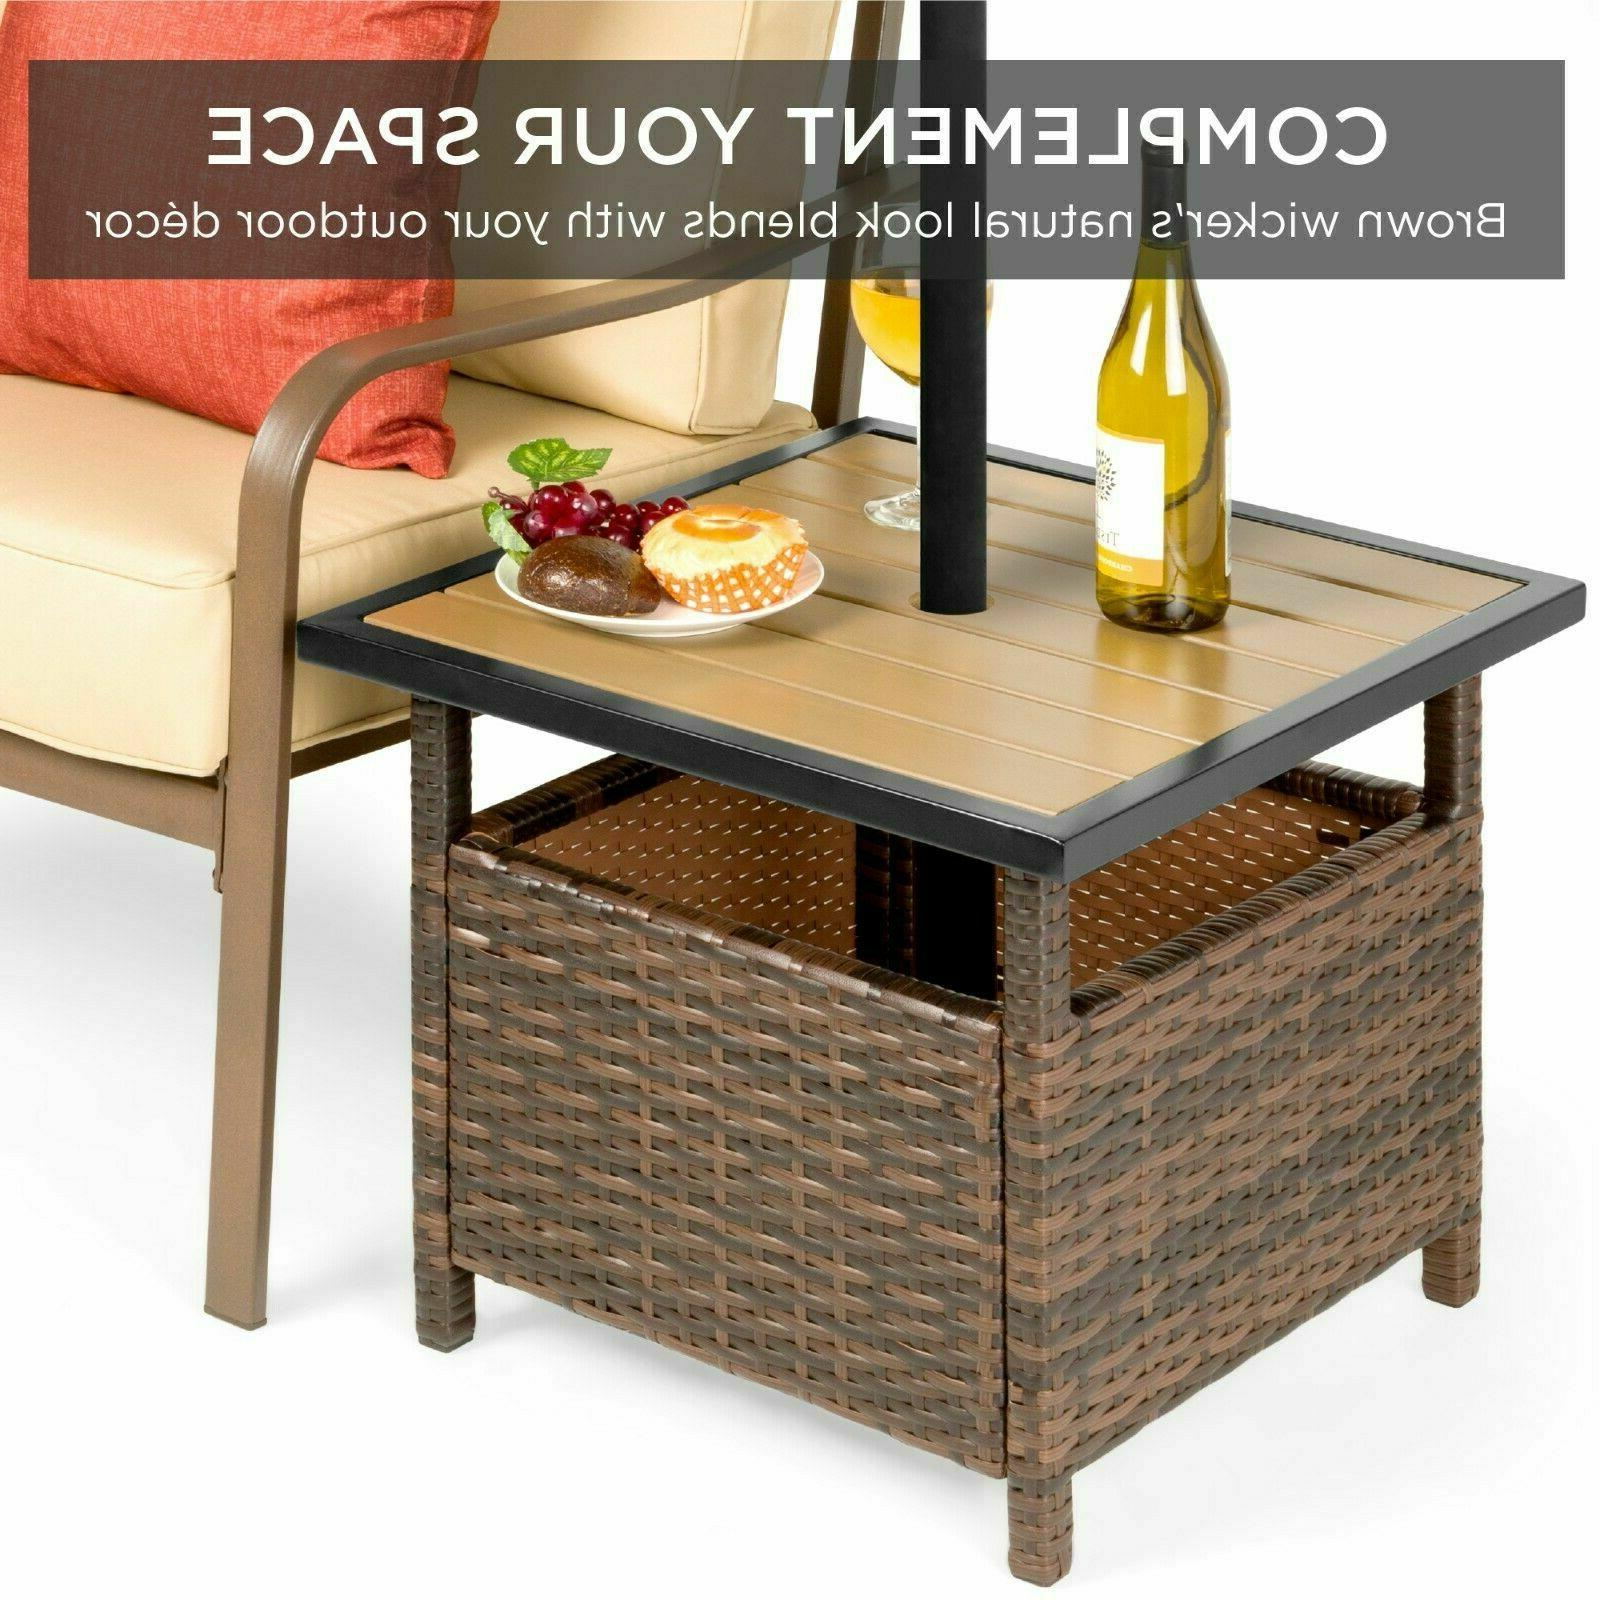 Best Products Wicker Rattan Patio Outdoor